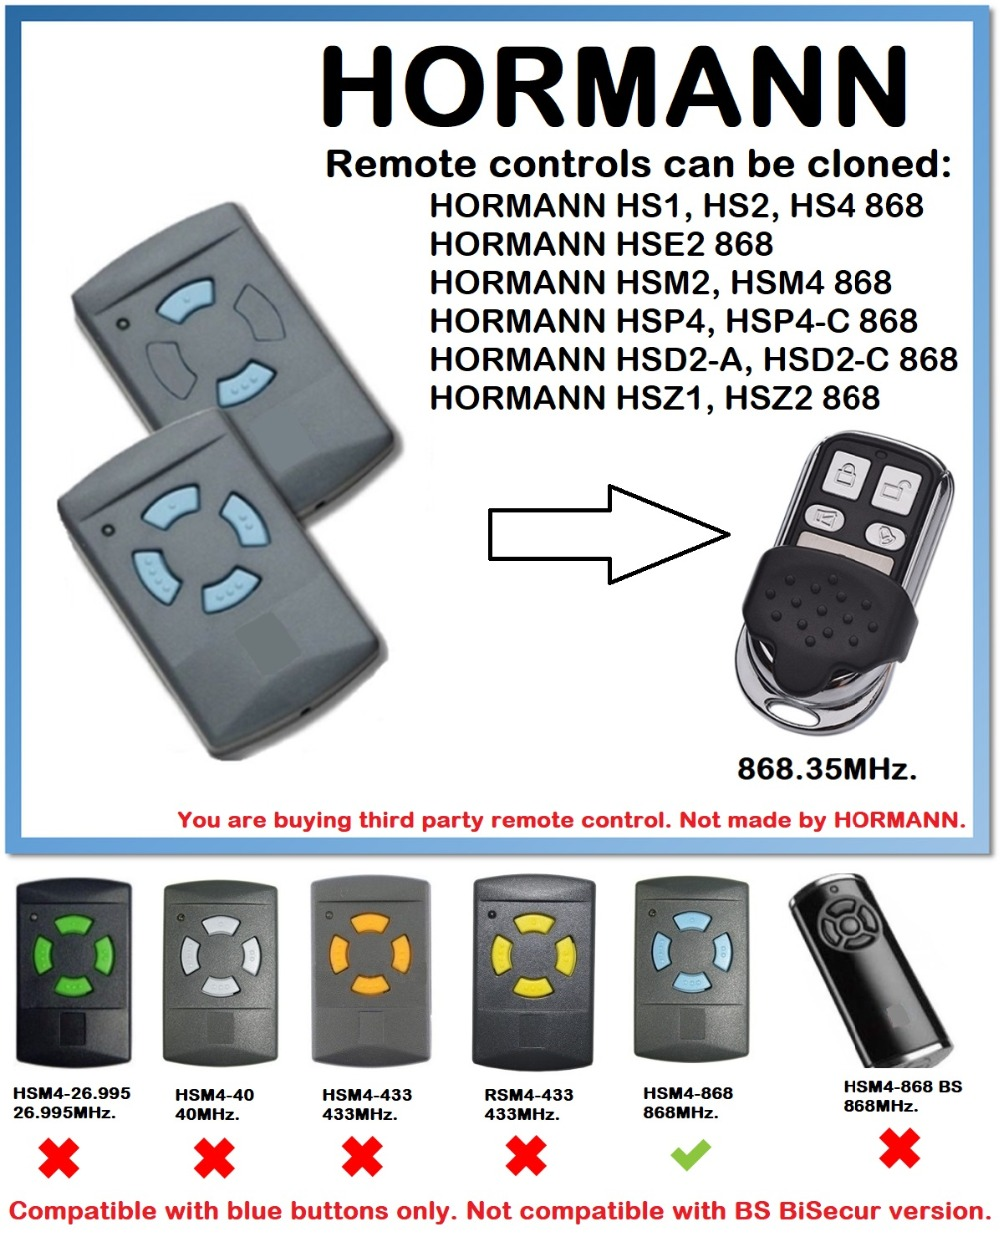 Hormann HSM4 868 mhz remote control Compatible with HSM2, HSM4 HS1 HS2 HS4 HSP4 HSP4-C HSE2 868MHz remote control duplicator